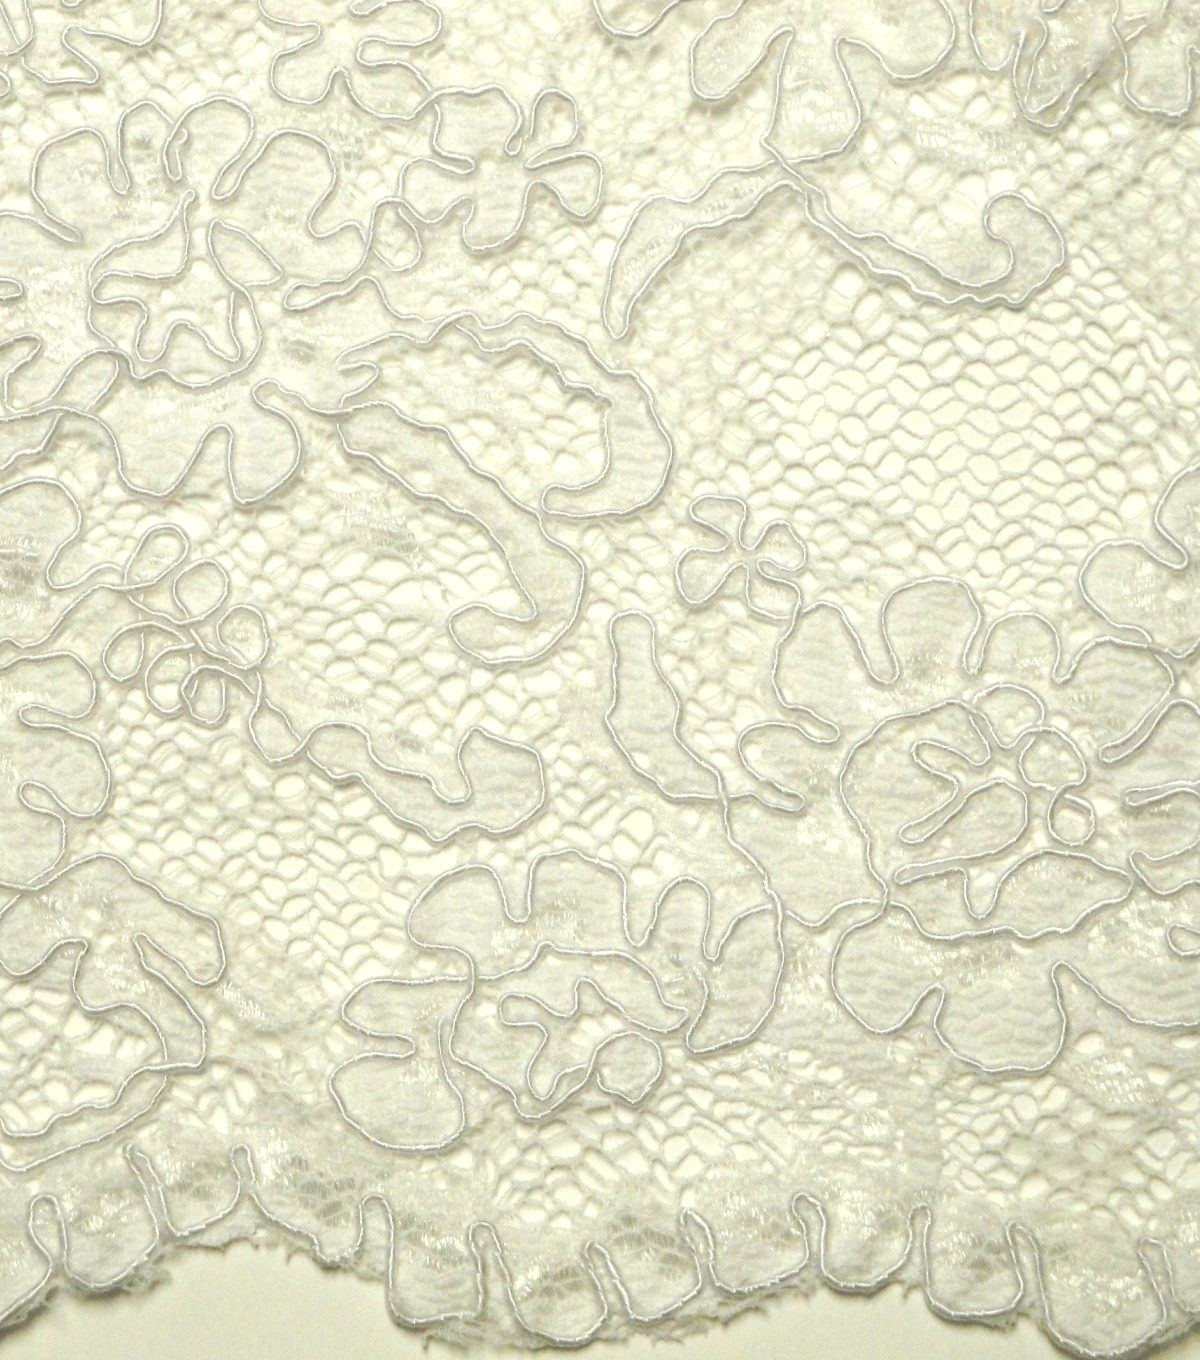 Designer Vault Bridal Fabric - Corded Embroidered Deanna Lace Ivory